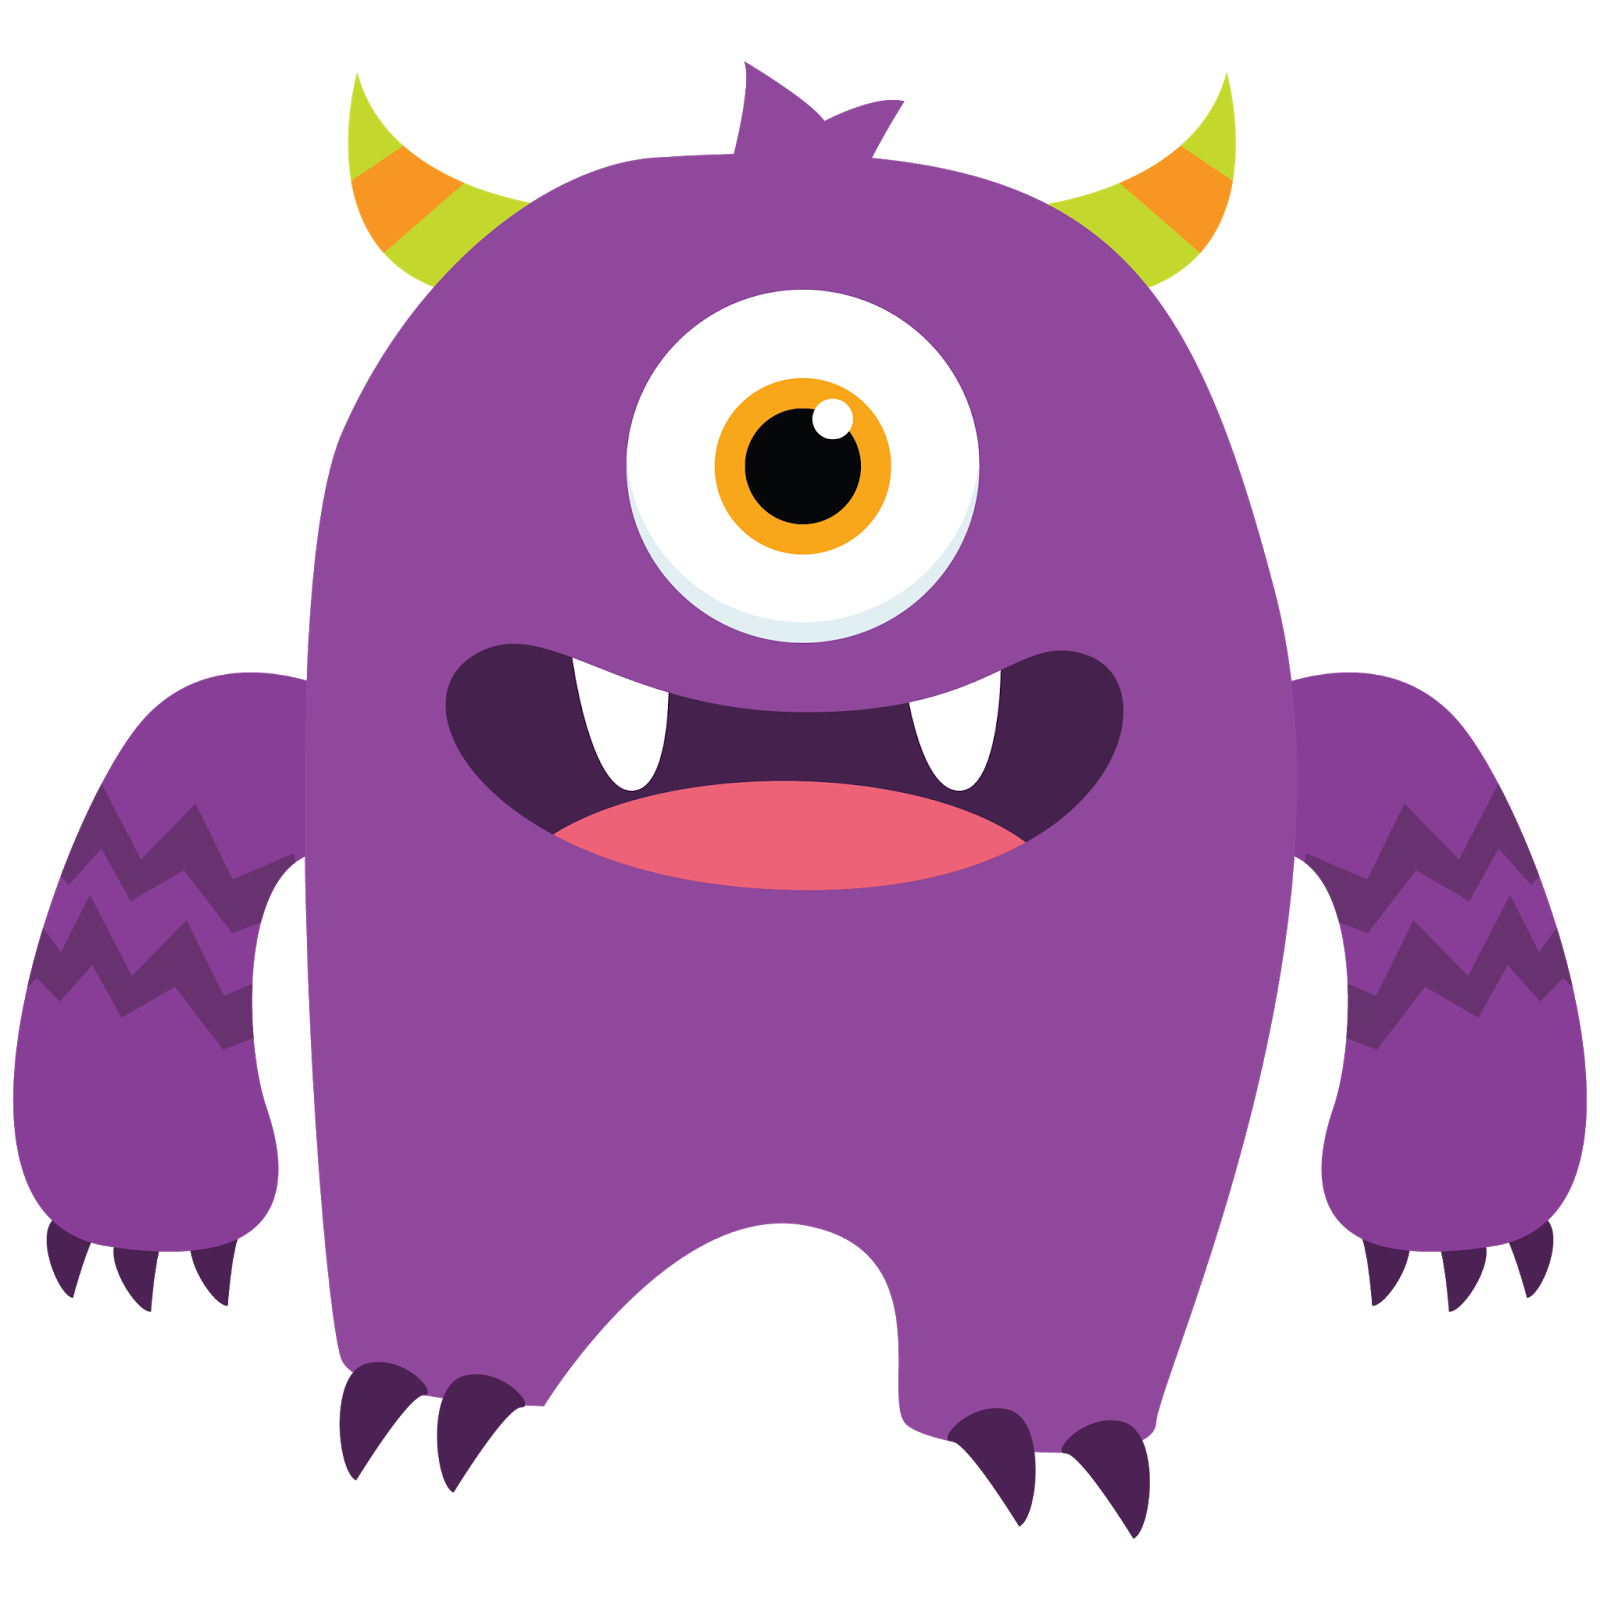 Cool monster clipart - Lil Monster PNG